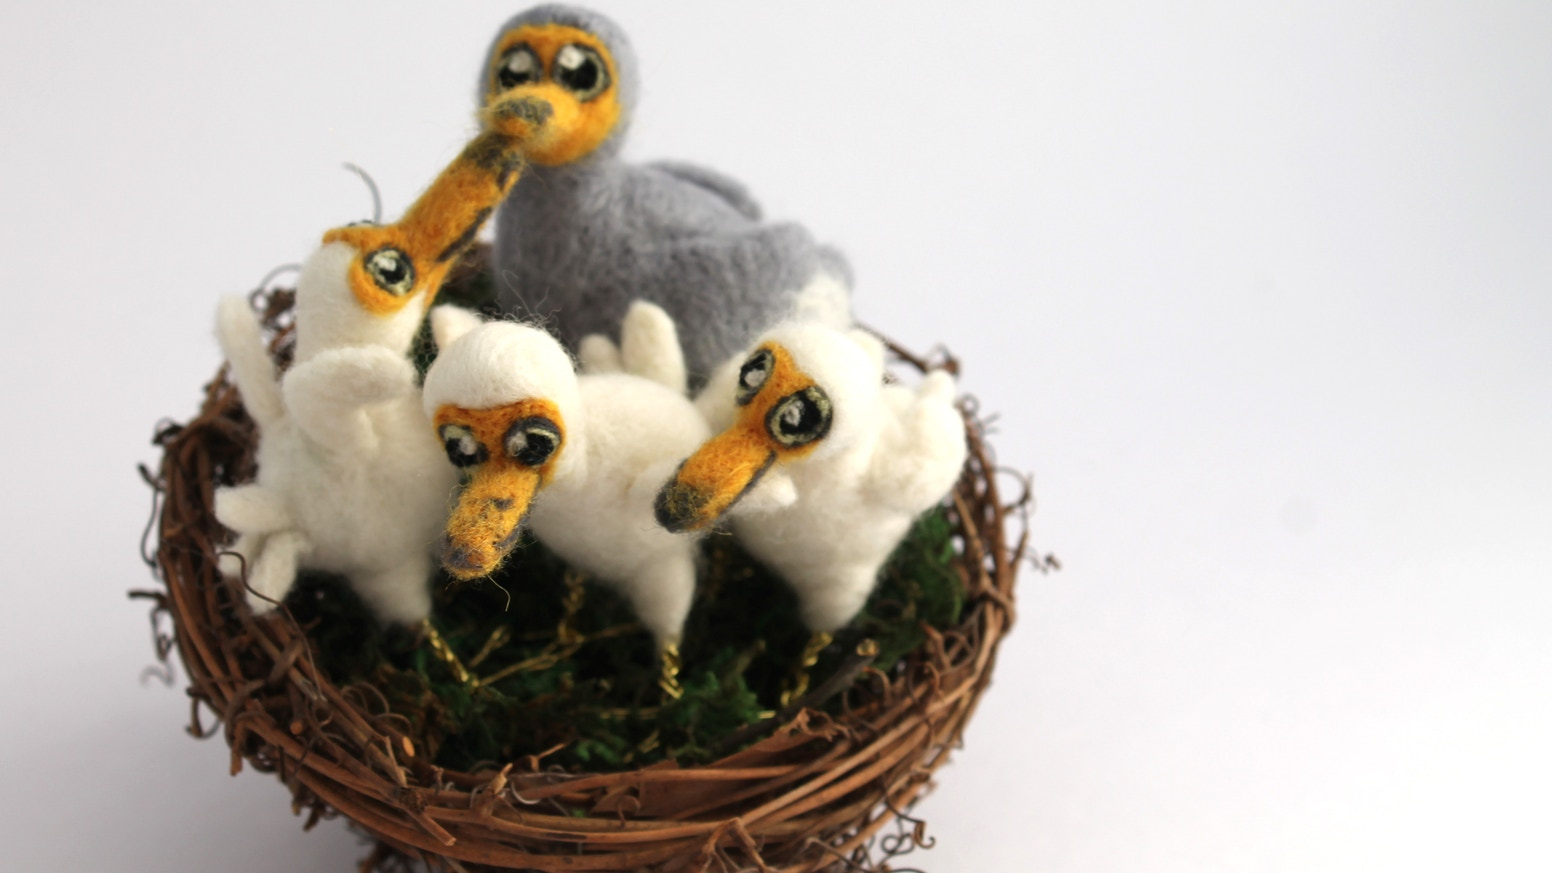 Make 100 Needle Felted Dodos - In an unprecedented un-extinction event I intend to repopulate the world with Dodo birds